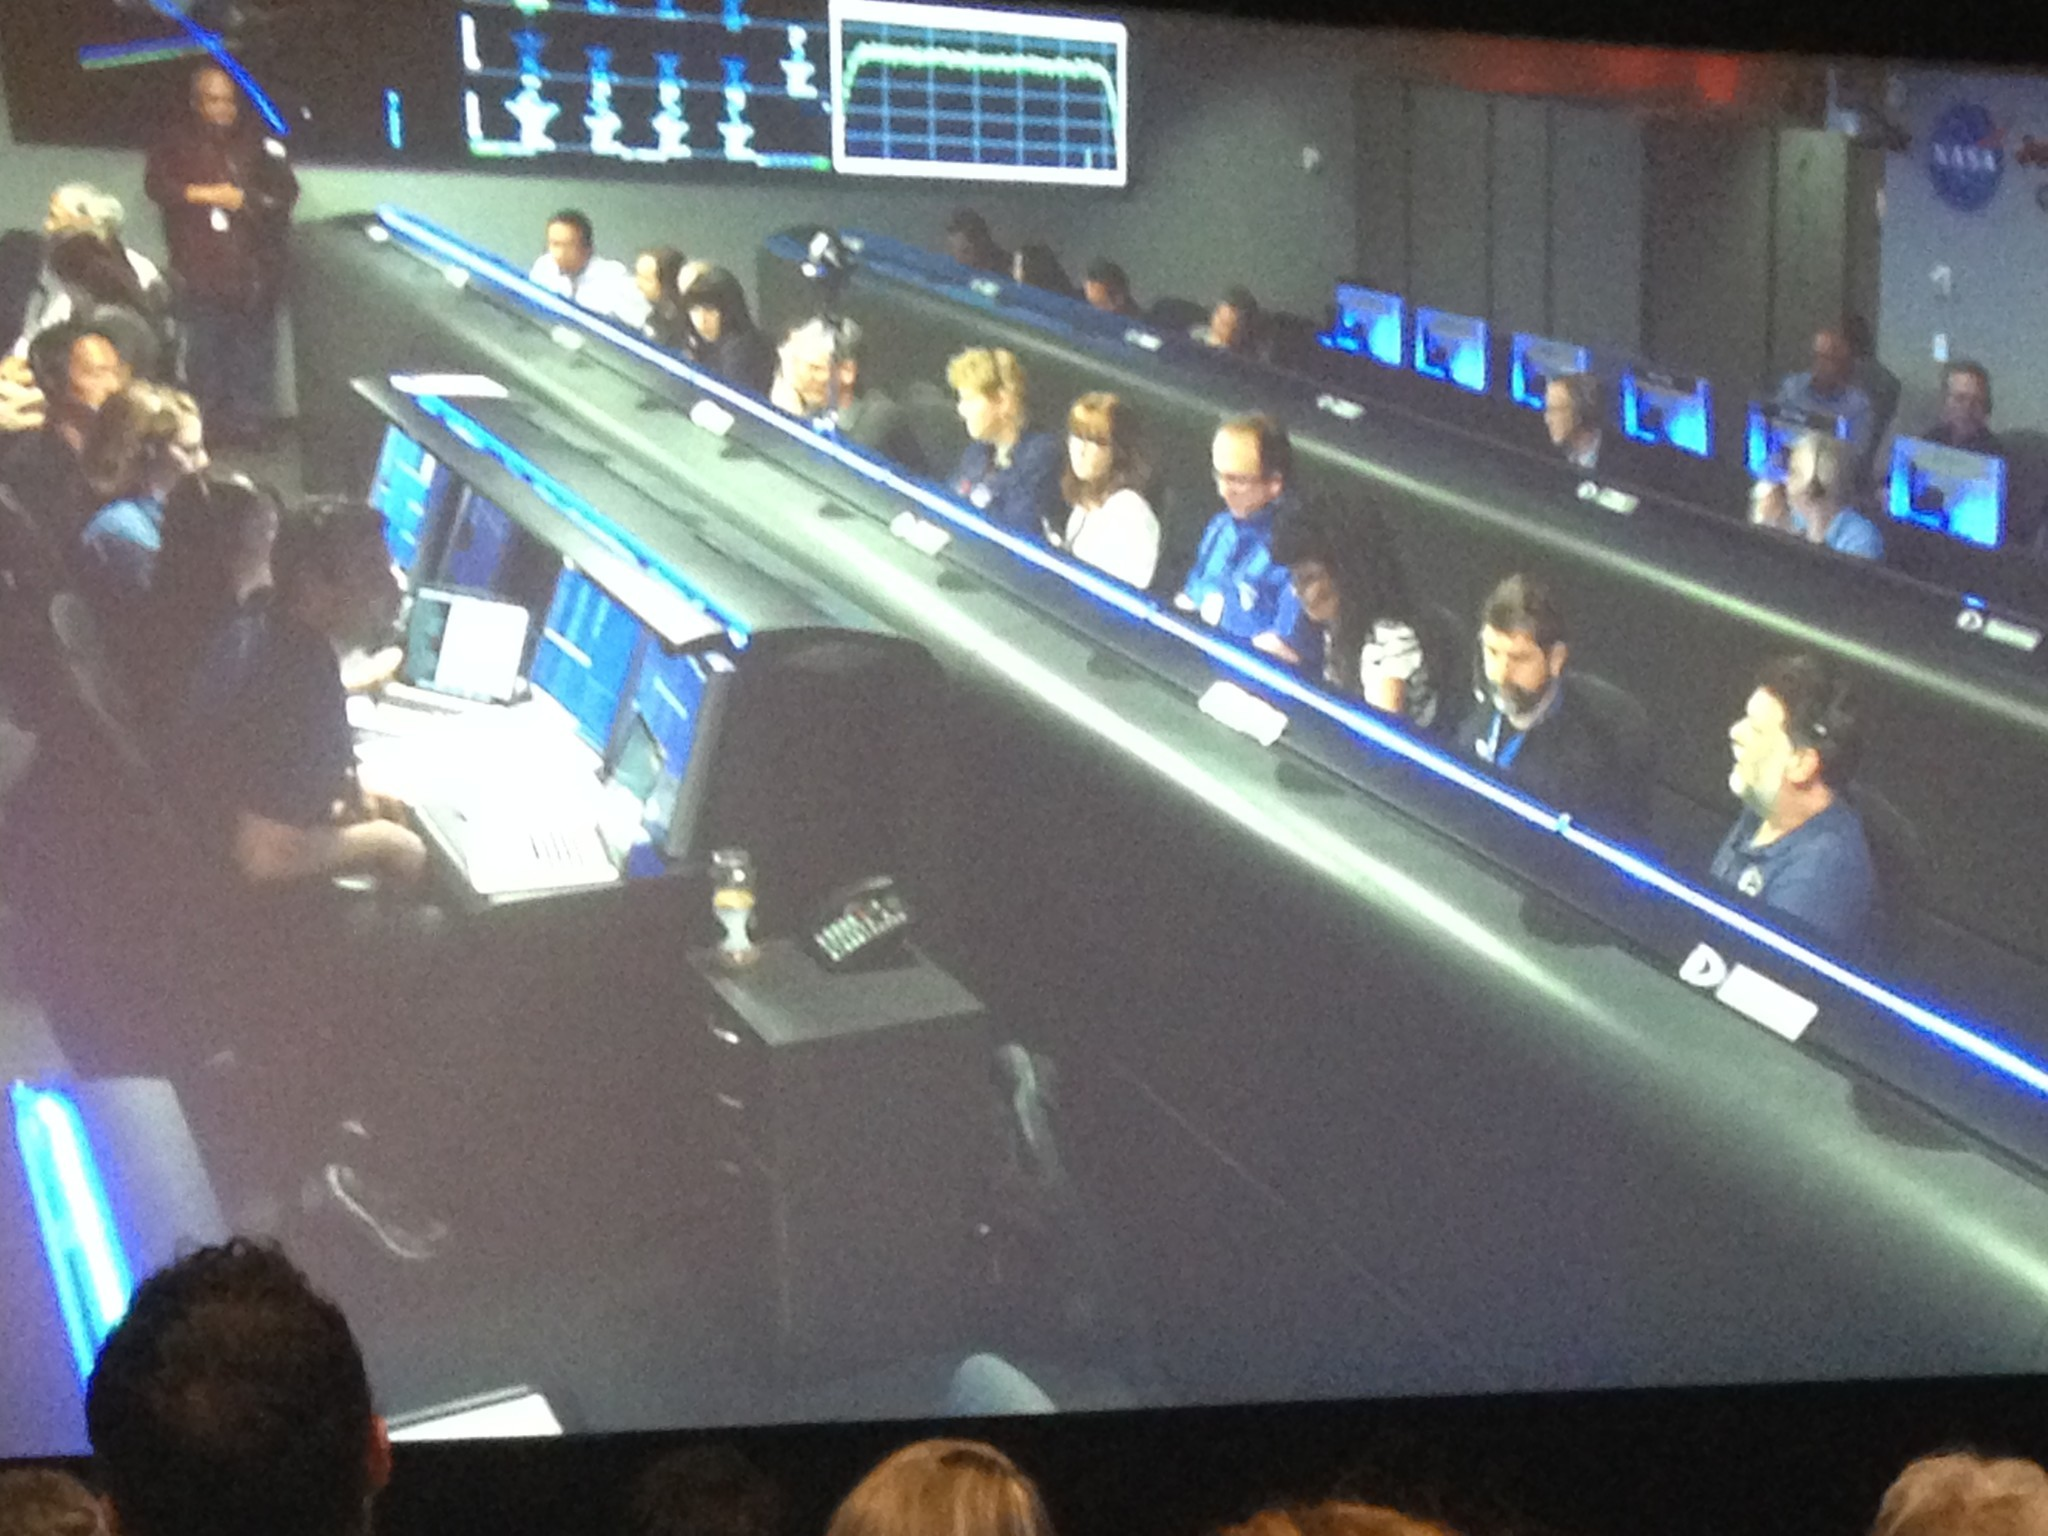 JPL employees (foreground) watch their colleagues on a screen as they all wait Cassini's signal.